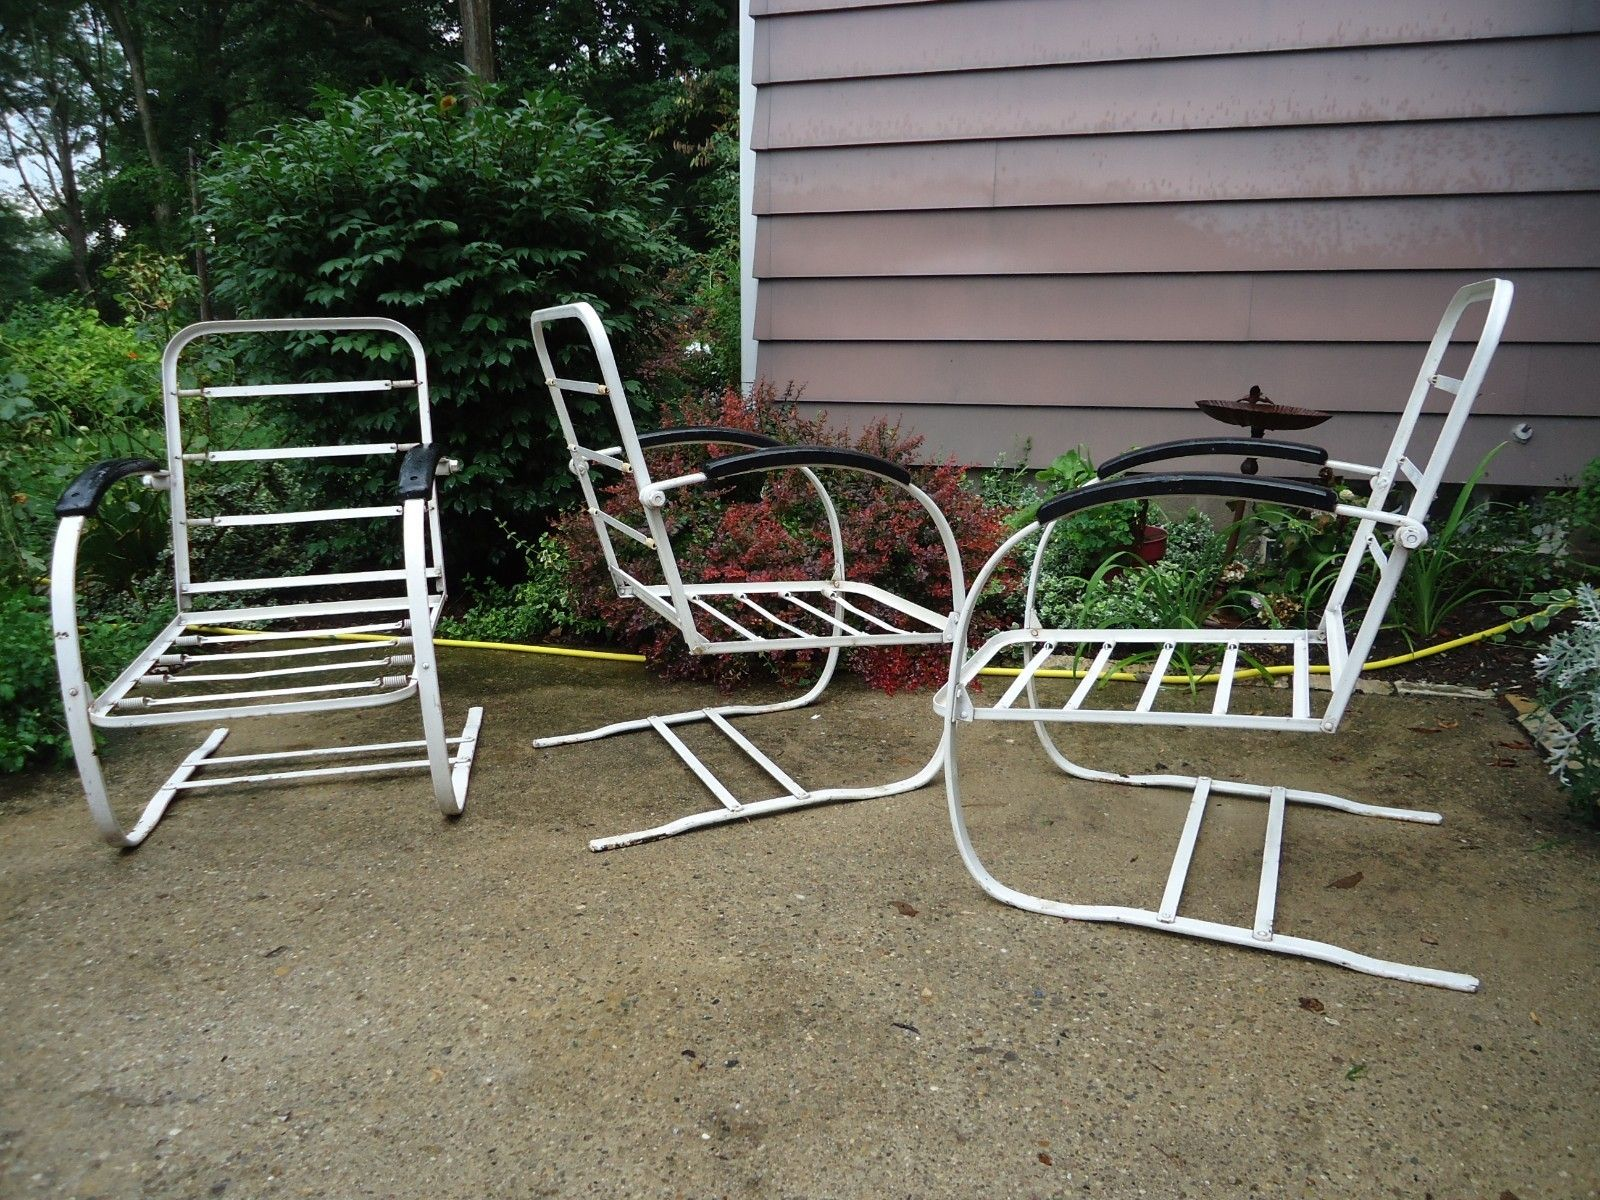 Howell bouncers Vintage Metal Porch Chairs